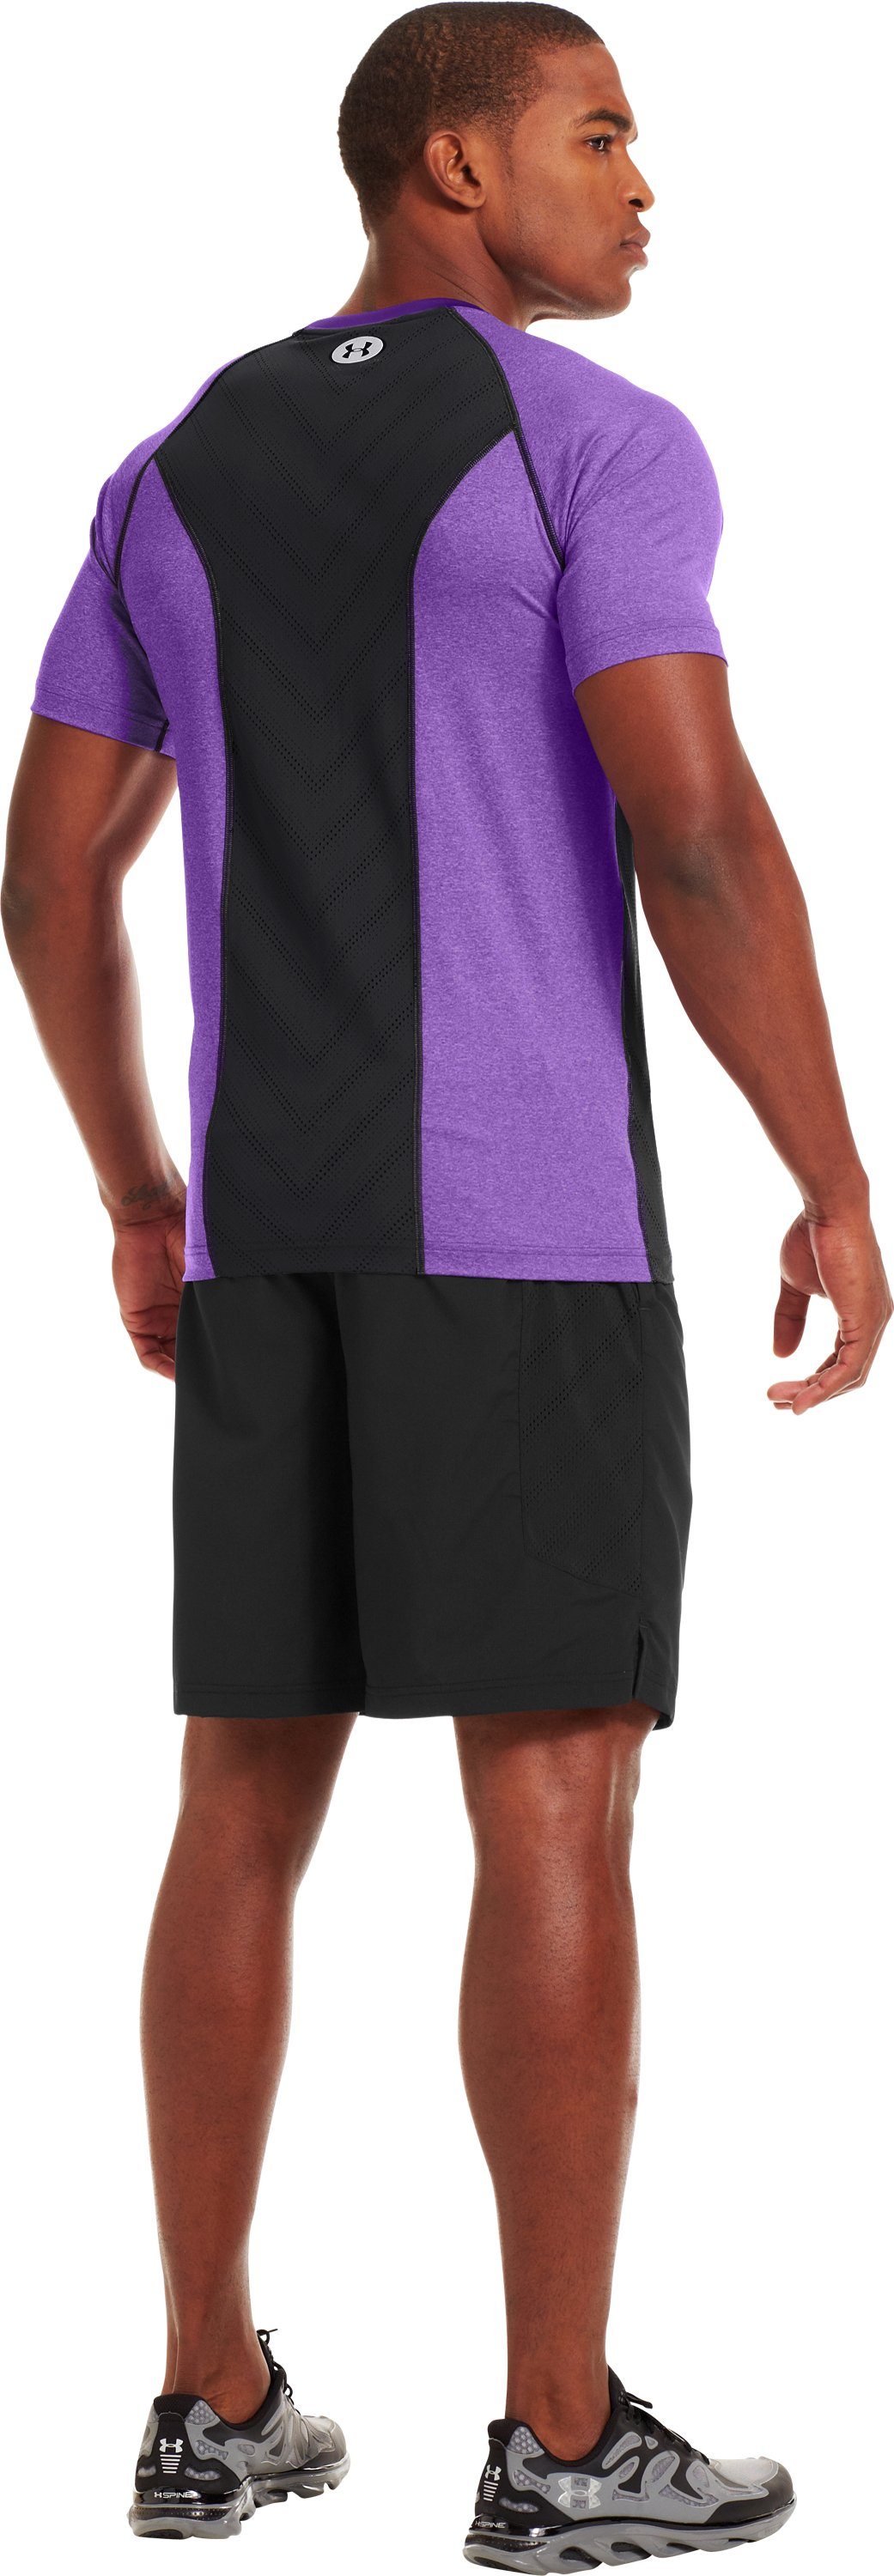 Men's HeatGear® Sonic ArmourVent™ Short Sleeve, PRIDE, Back